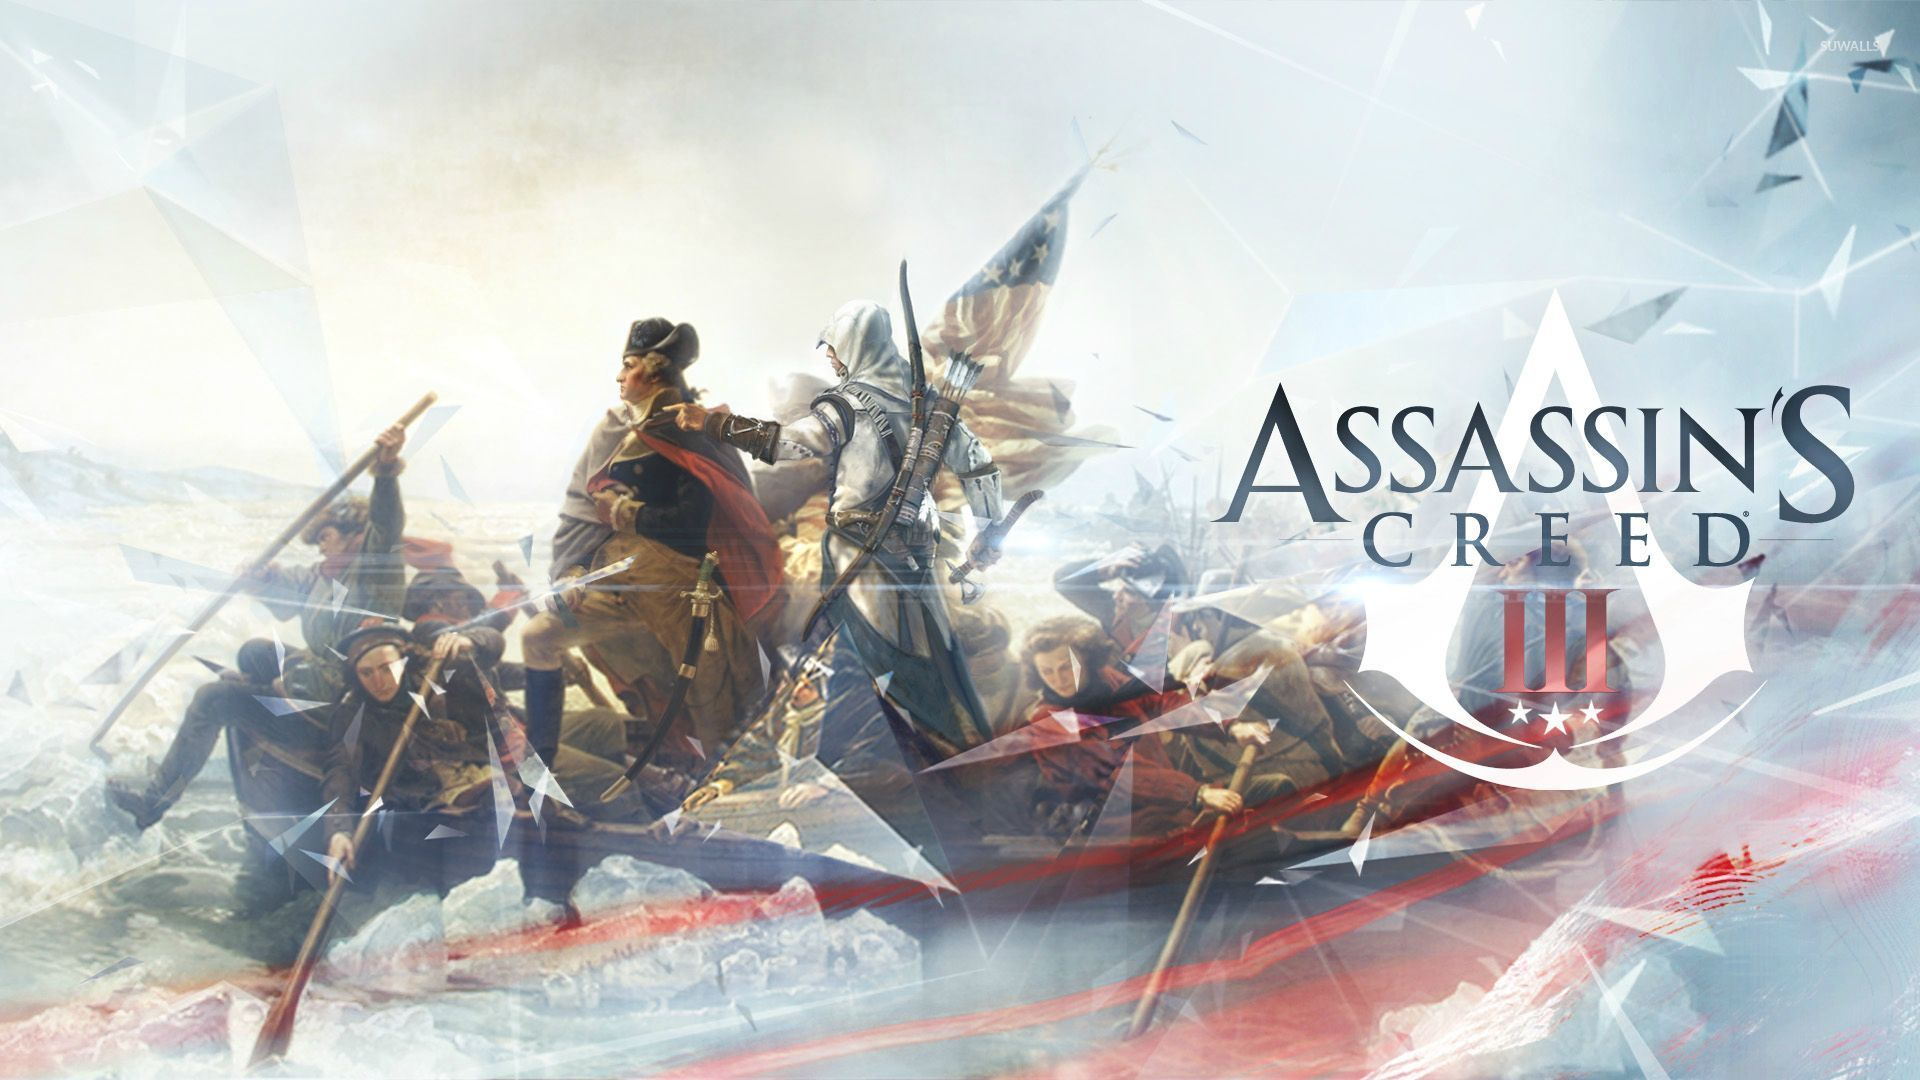 Assassins Creed III 9 Wallpaper